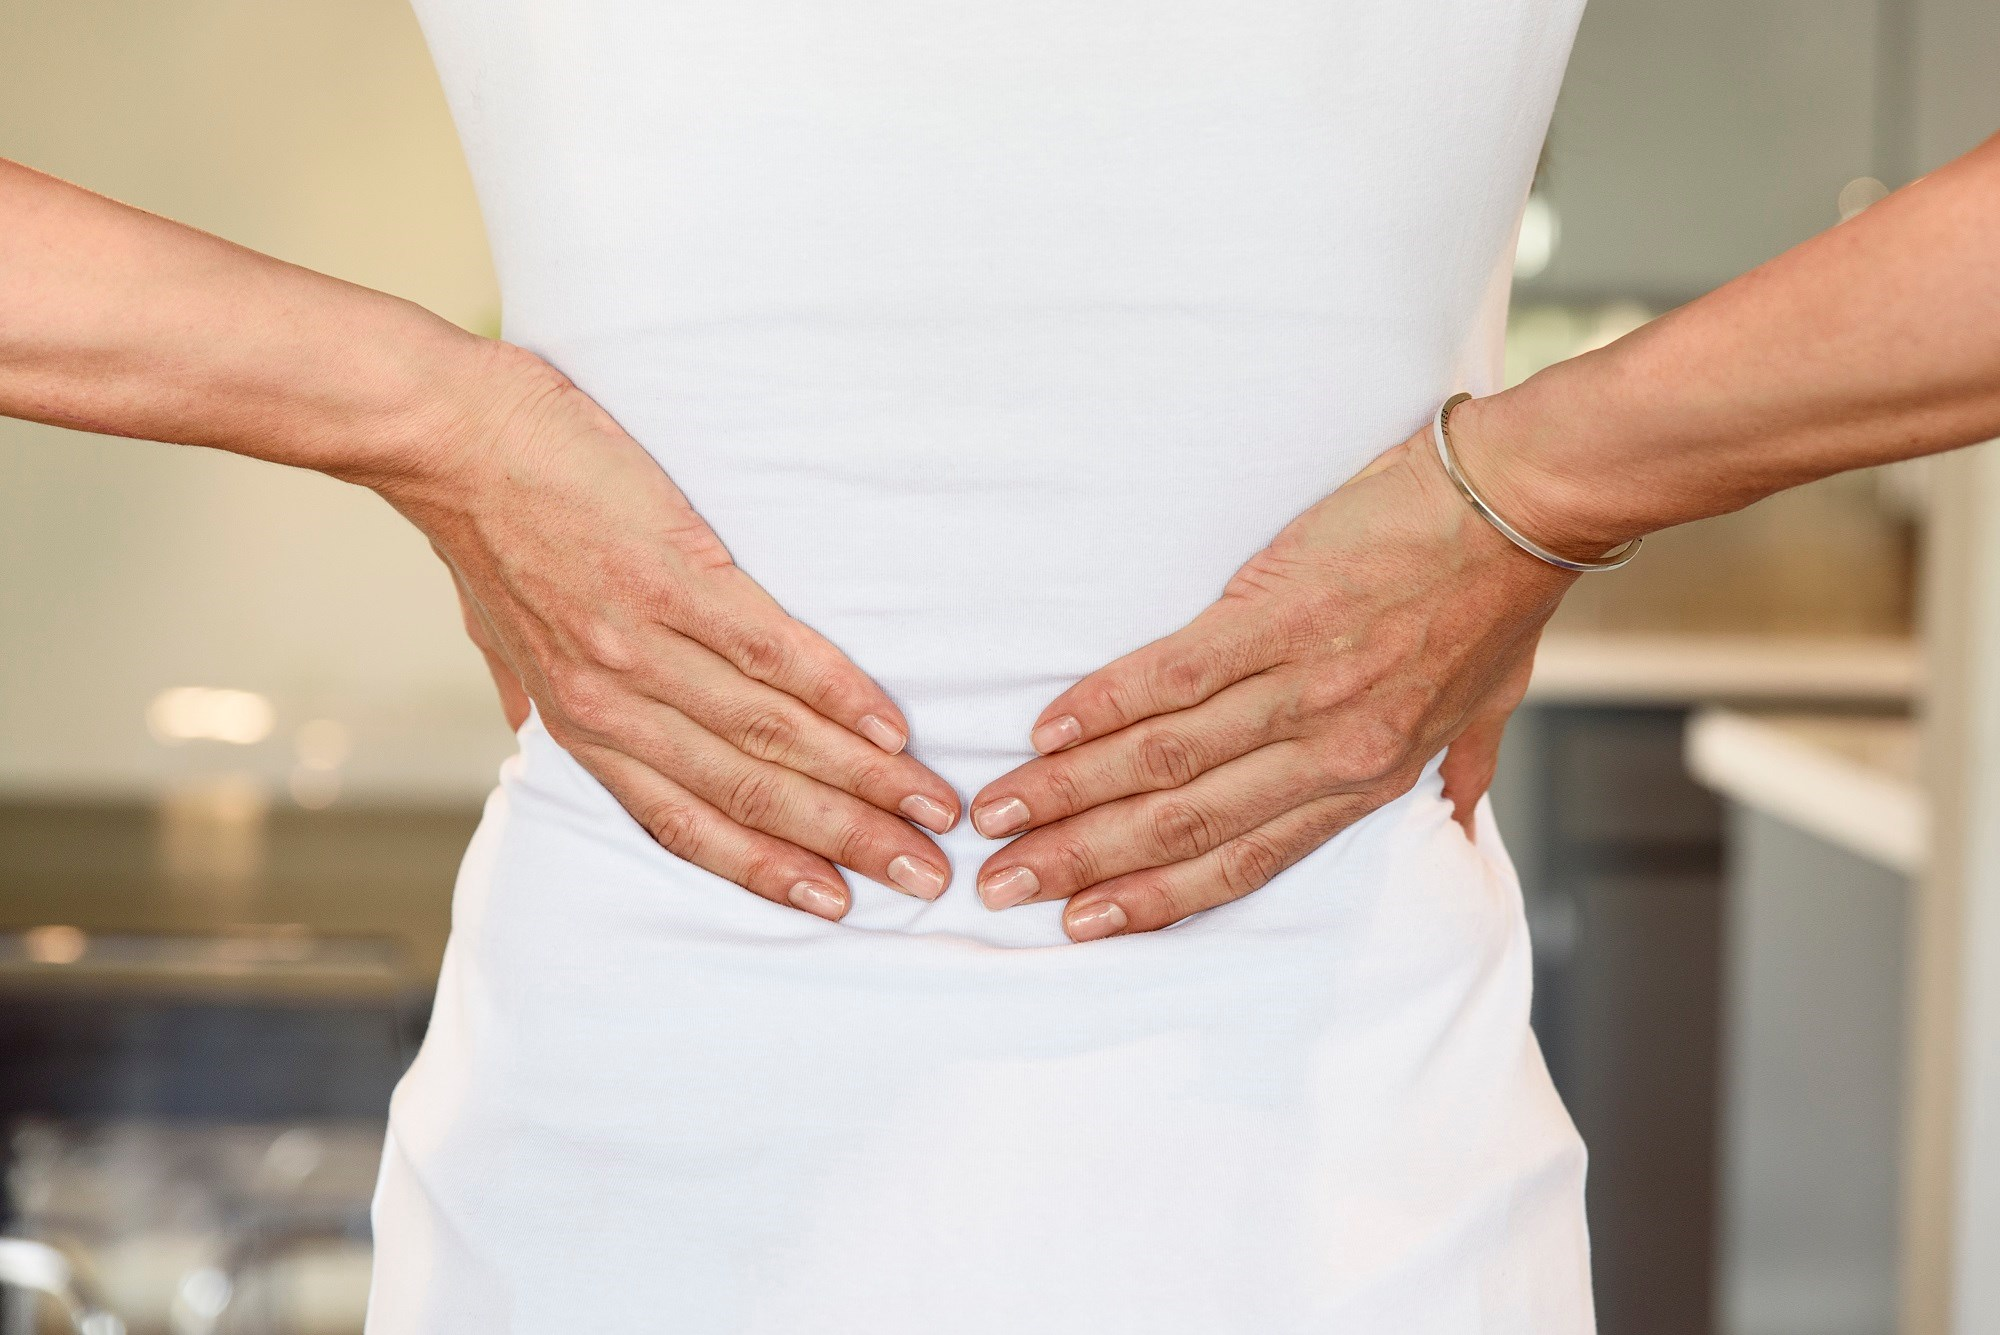 Chronic Low Back Pain Levels Vary Between Sex and Race